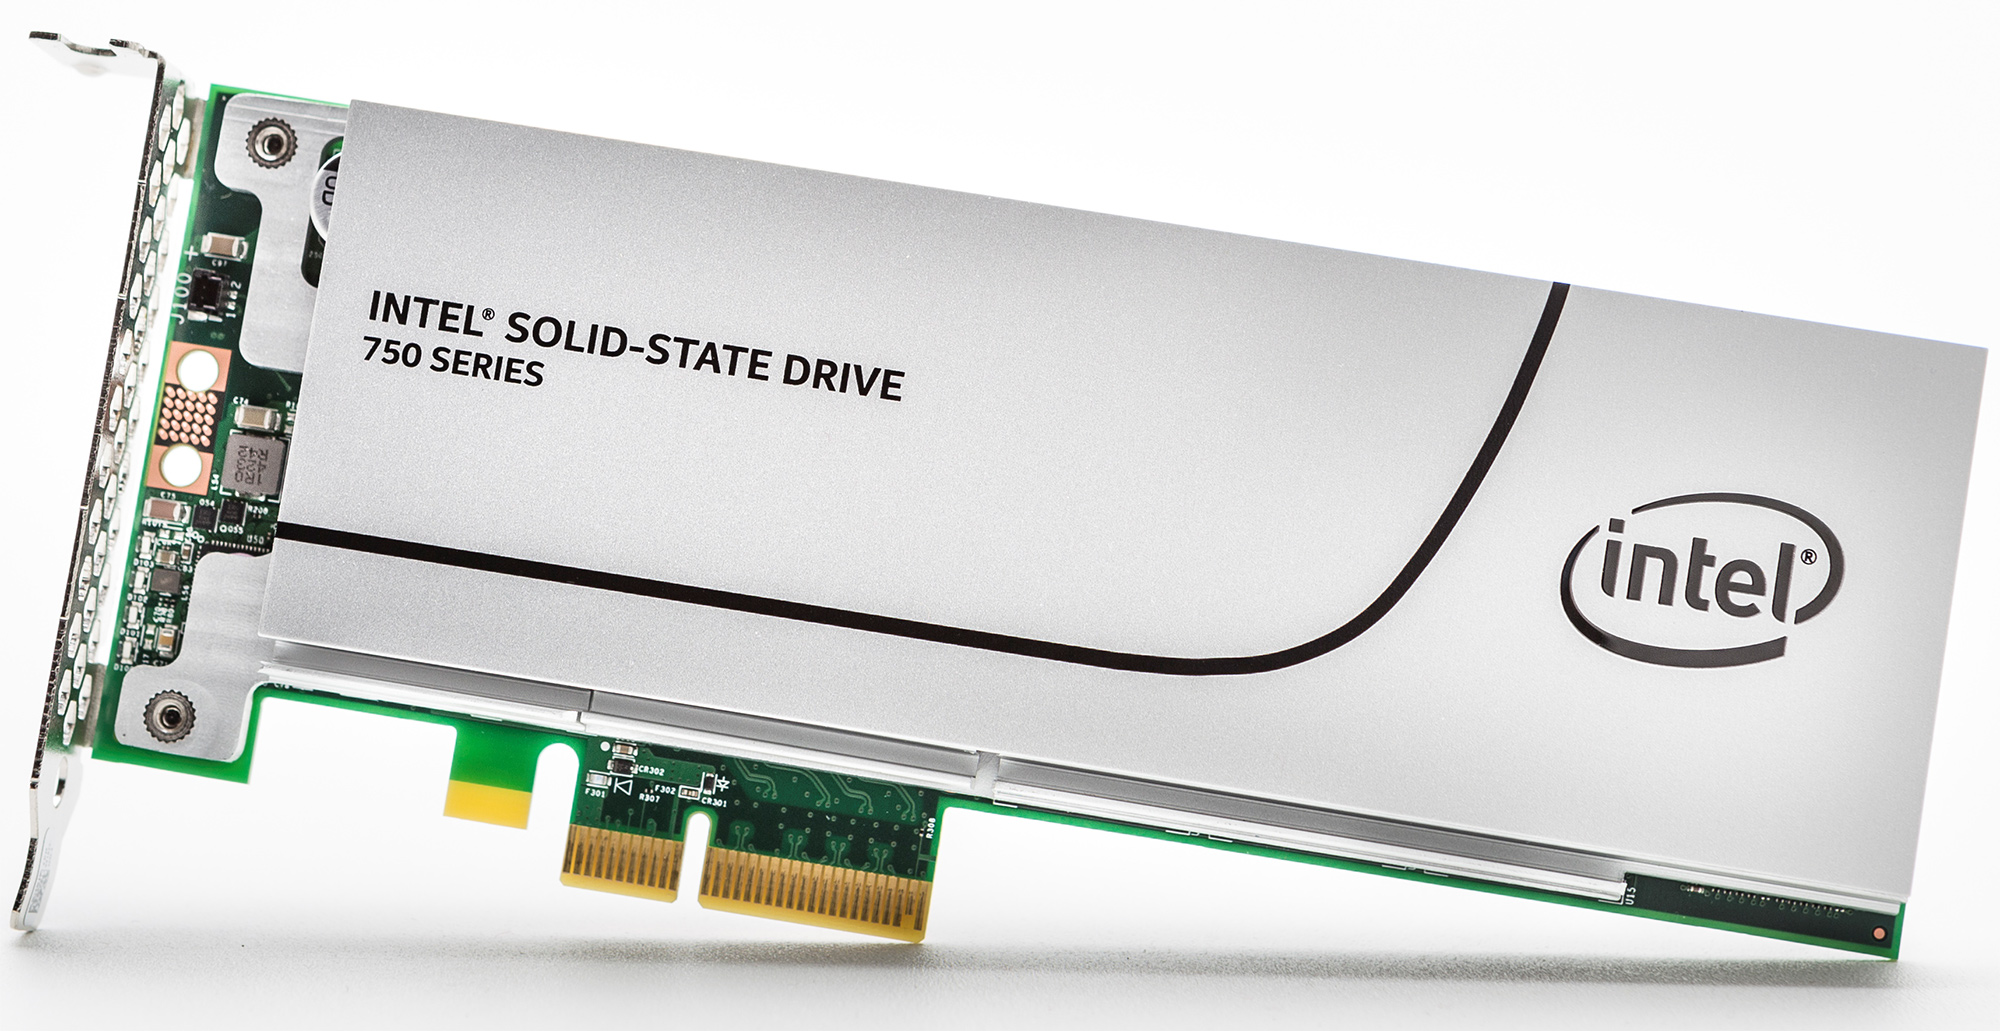 SSD 1,2TB Intel 750 series 1/2height PCIe 3.0 MLC